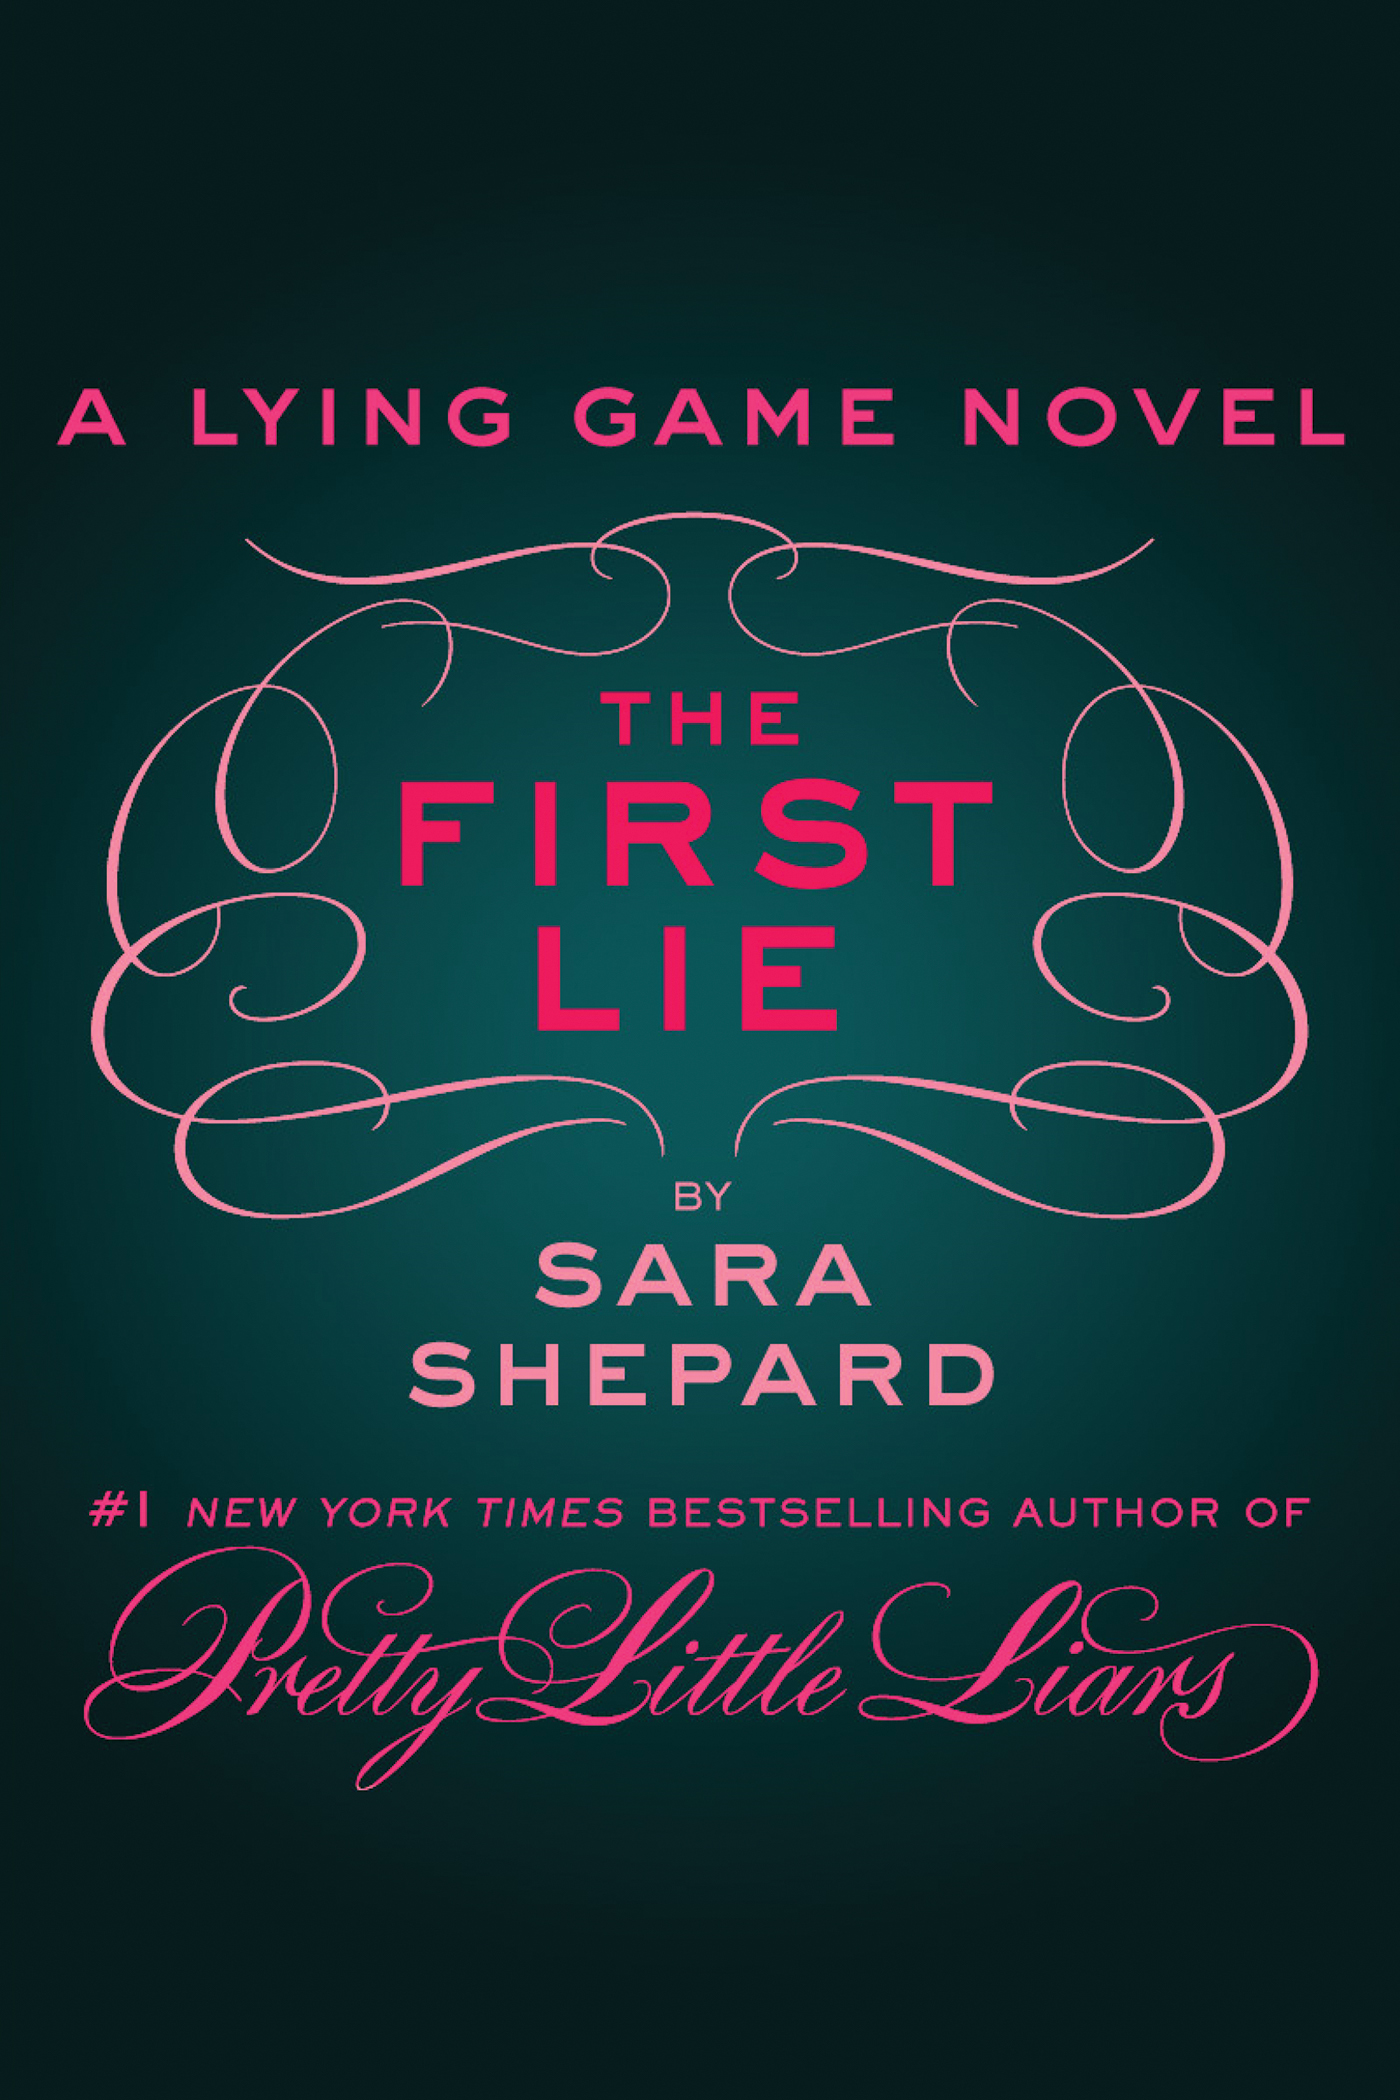 The First Lie: A Lying Game Novella